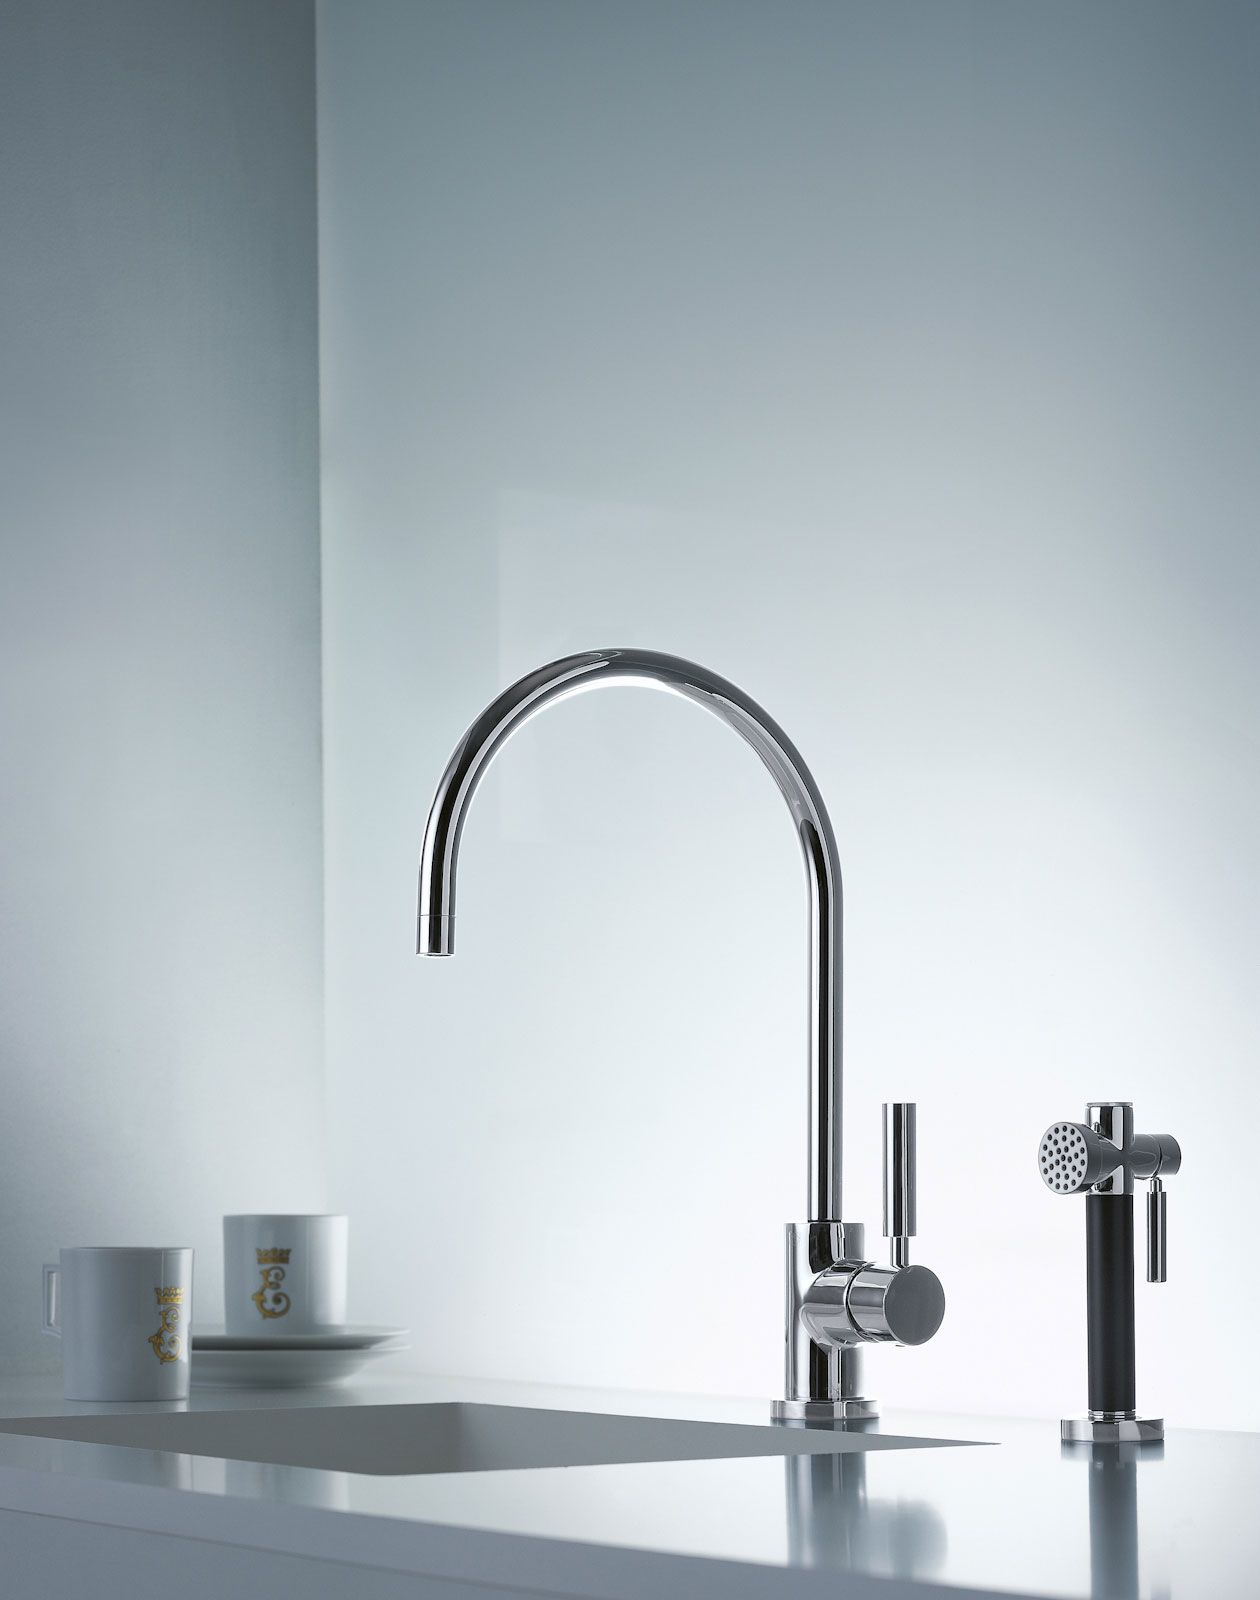 Dornbracht's simple kitchen faucet with hand spray / Tara Classic Collection